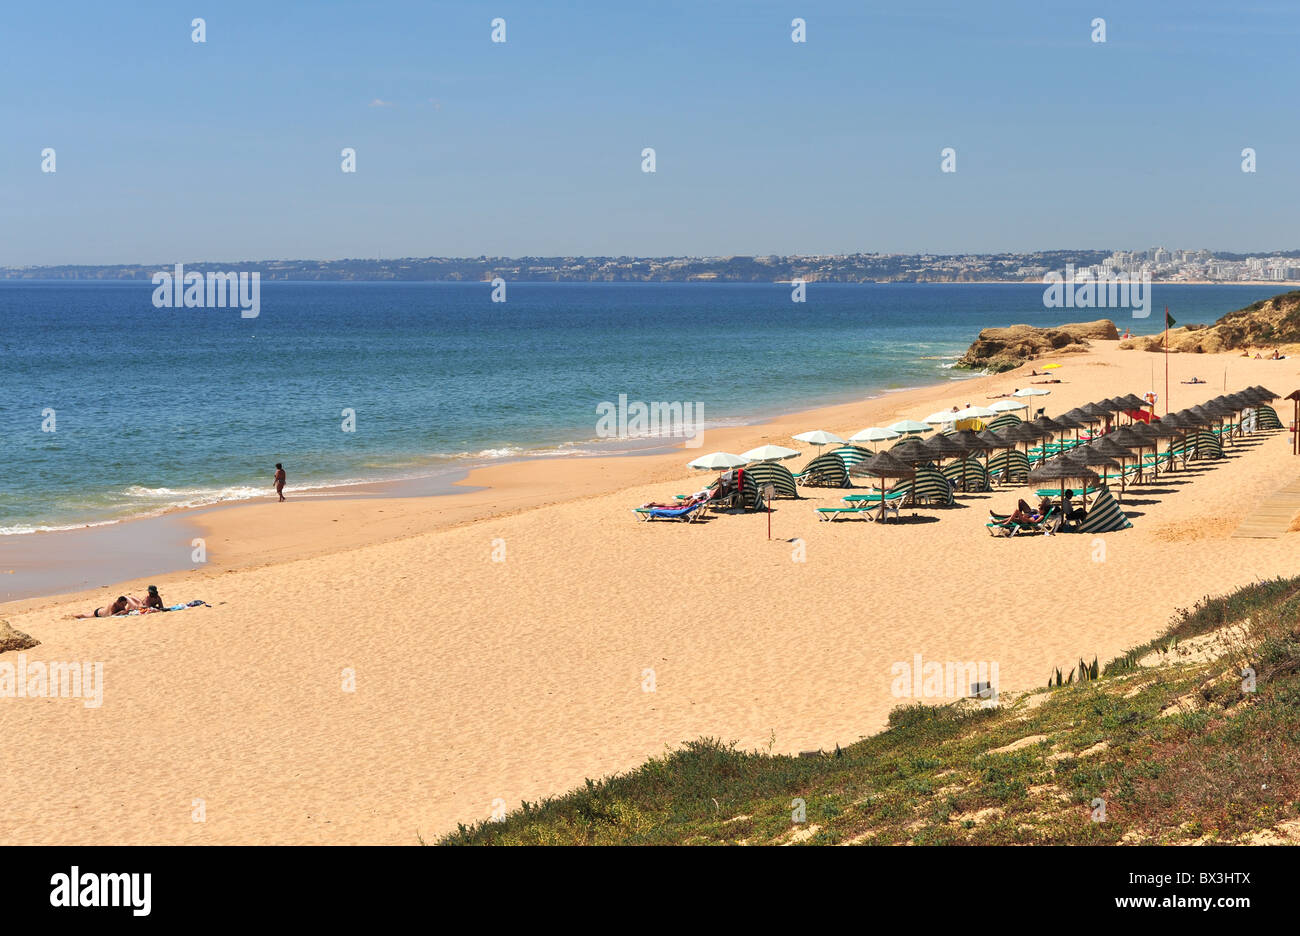 The wide and sandy beach at Gale, Algarve, Portugal - Stock Image